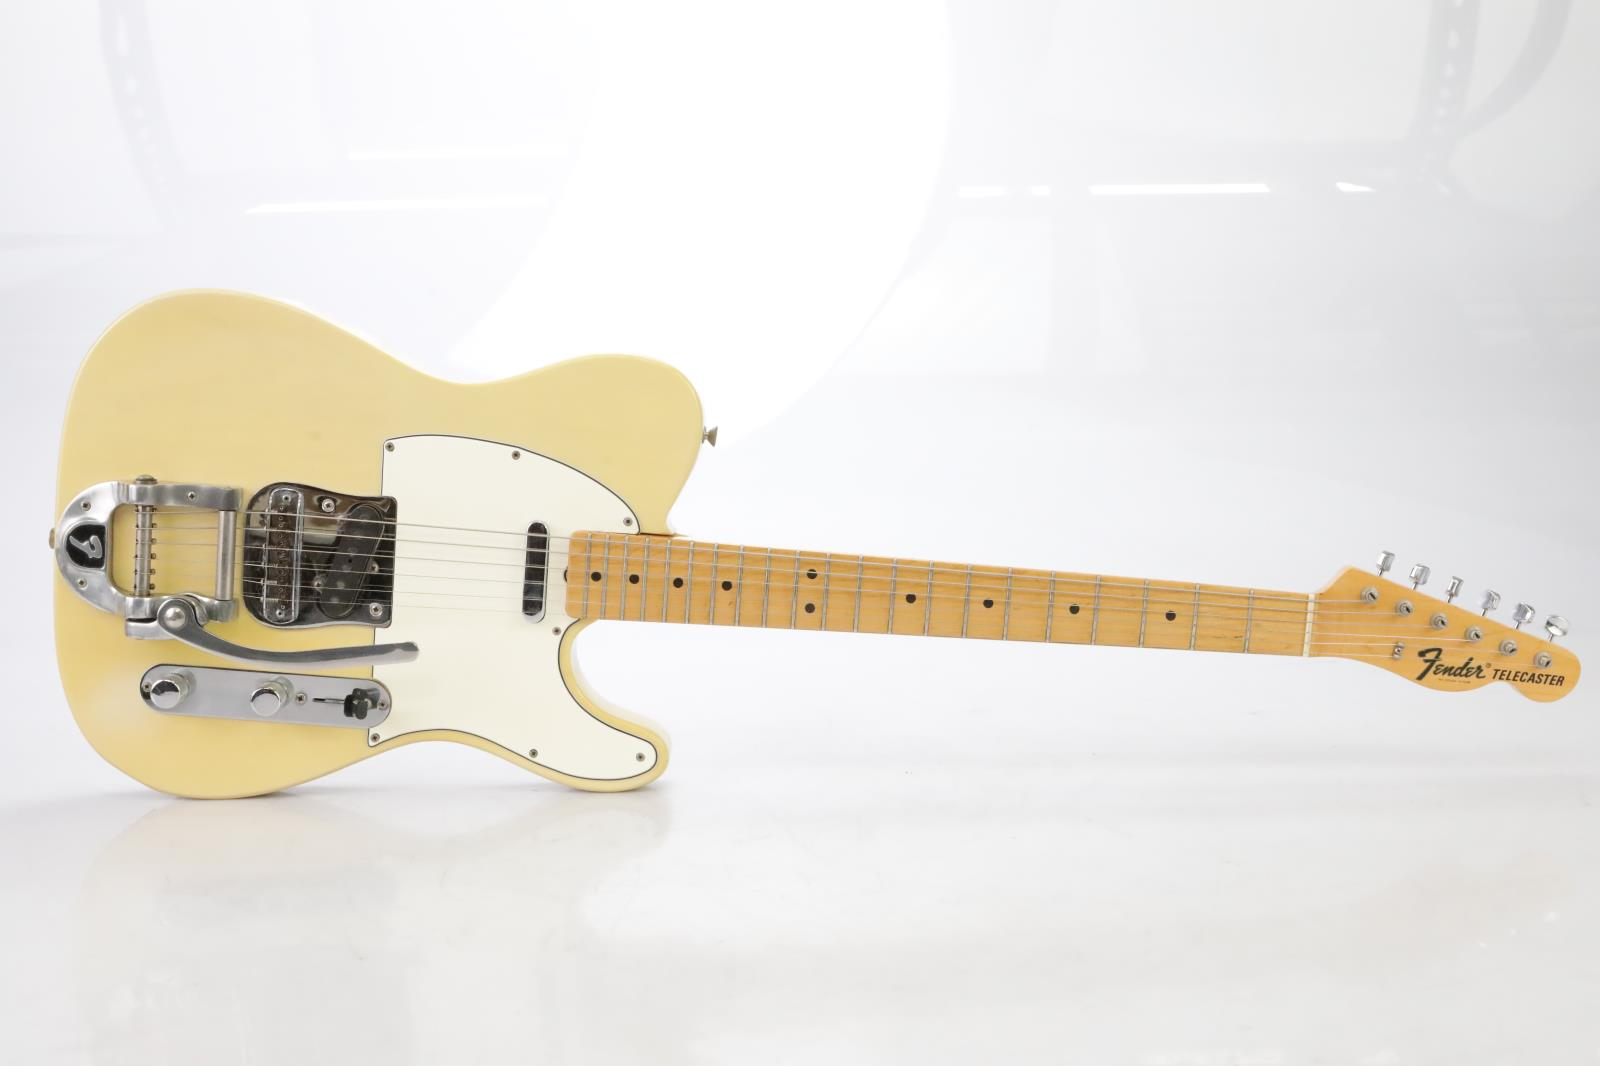 Bigsby-equipped Fender Telecaster